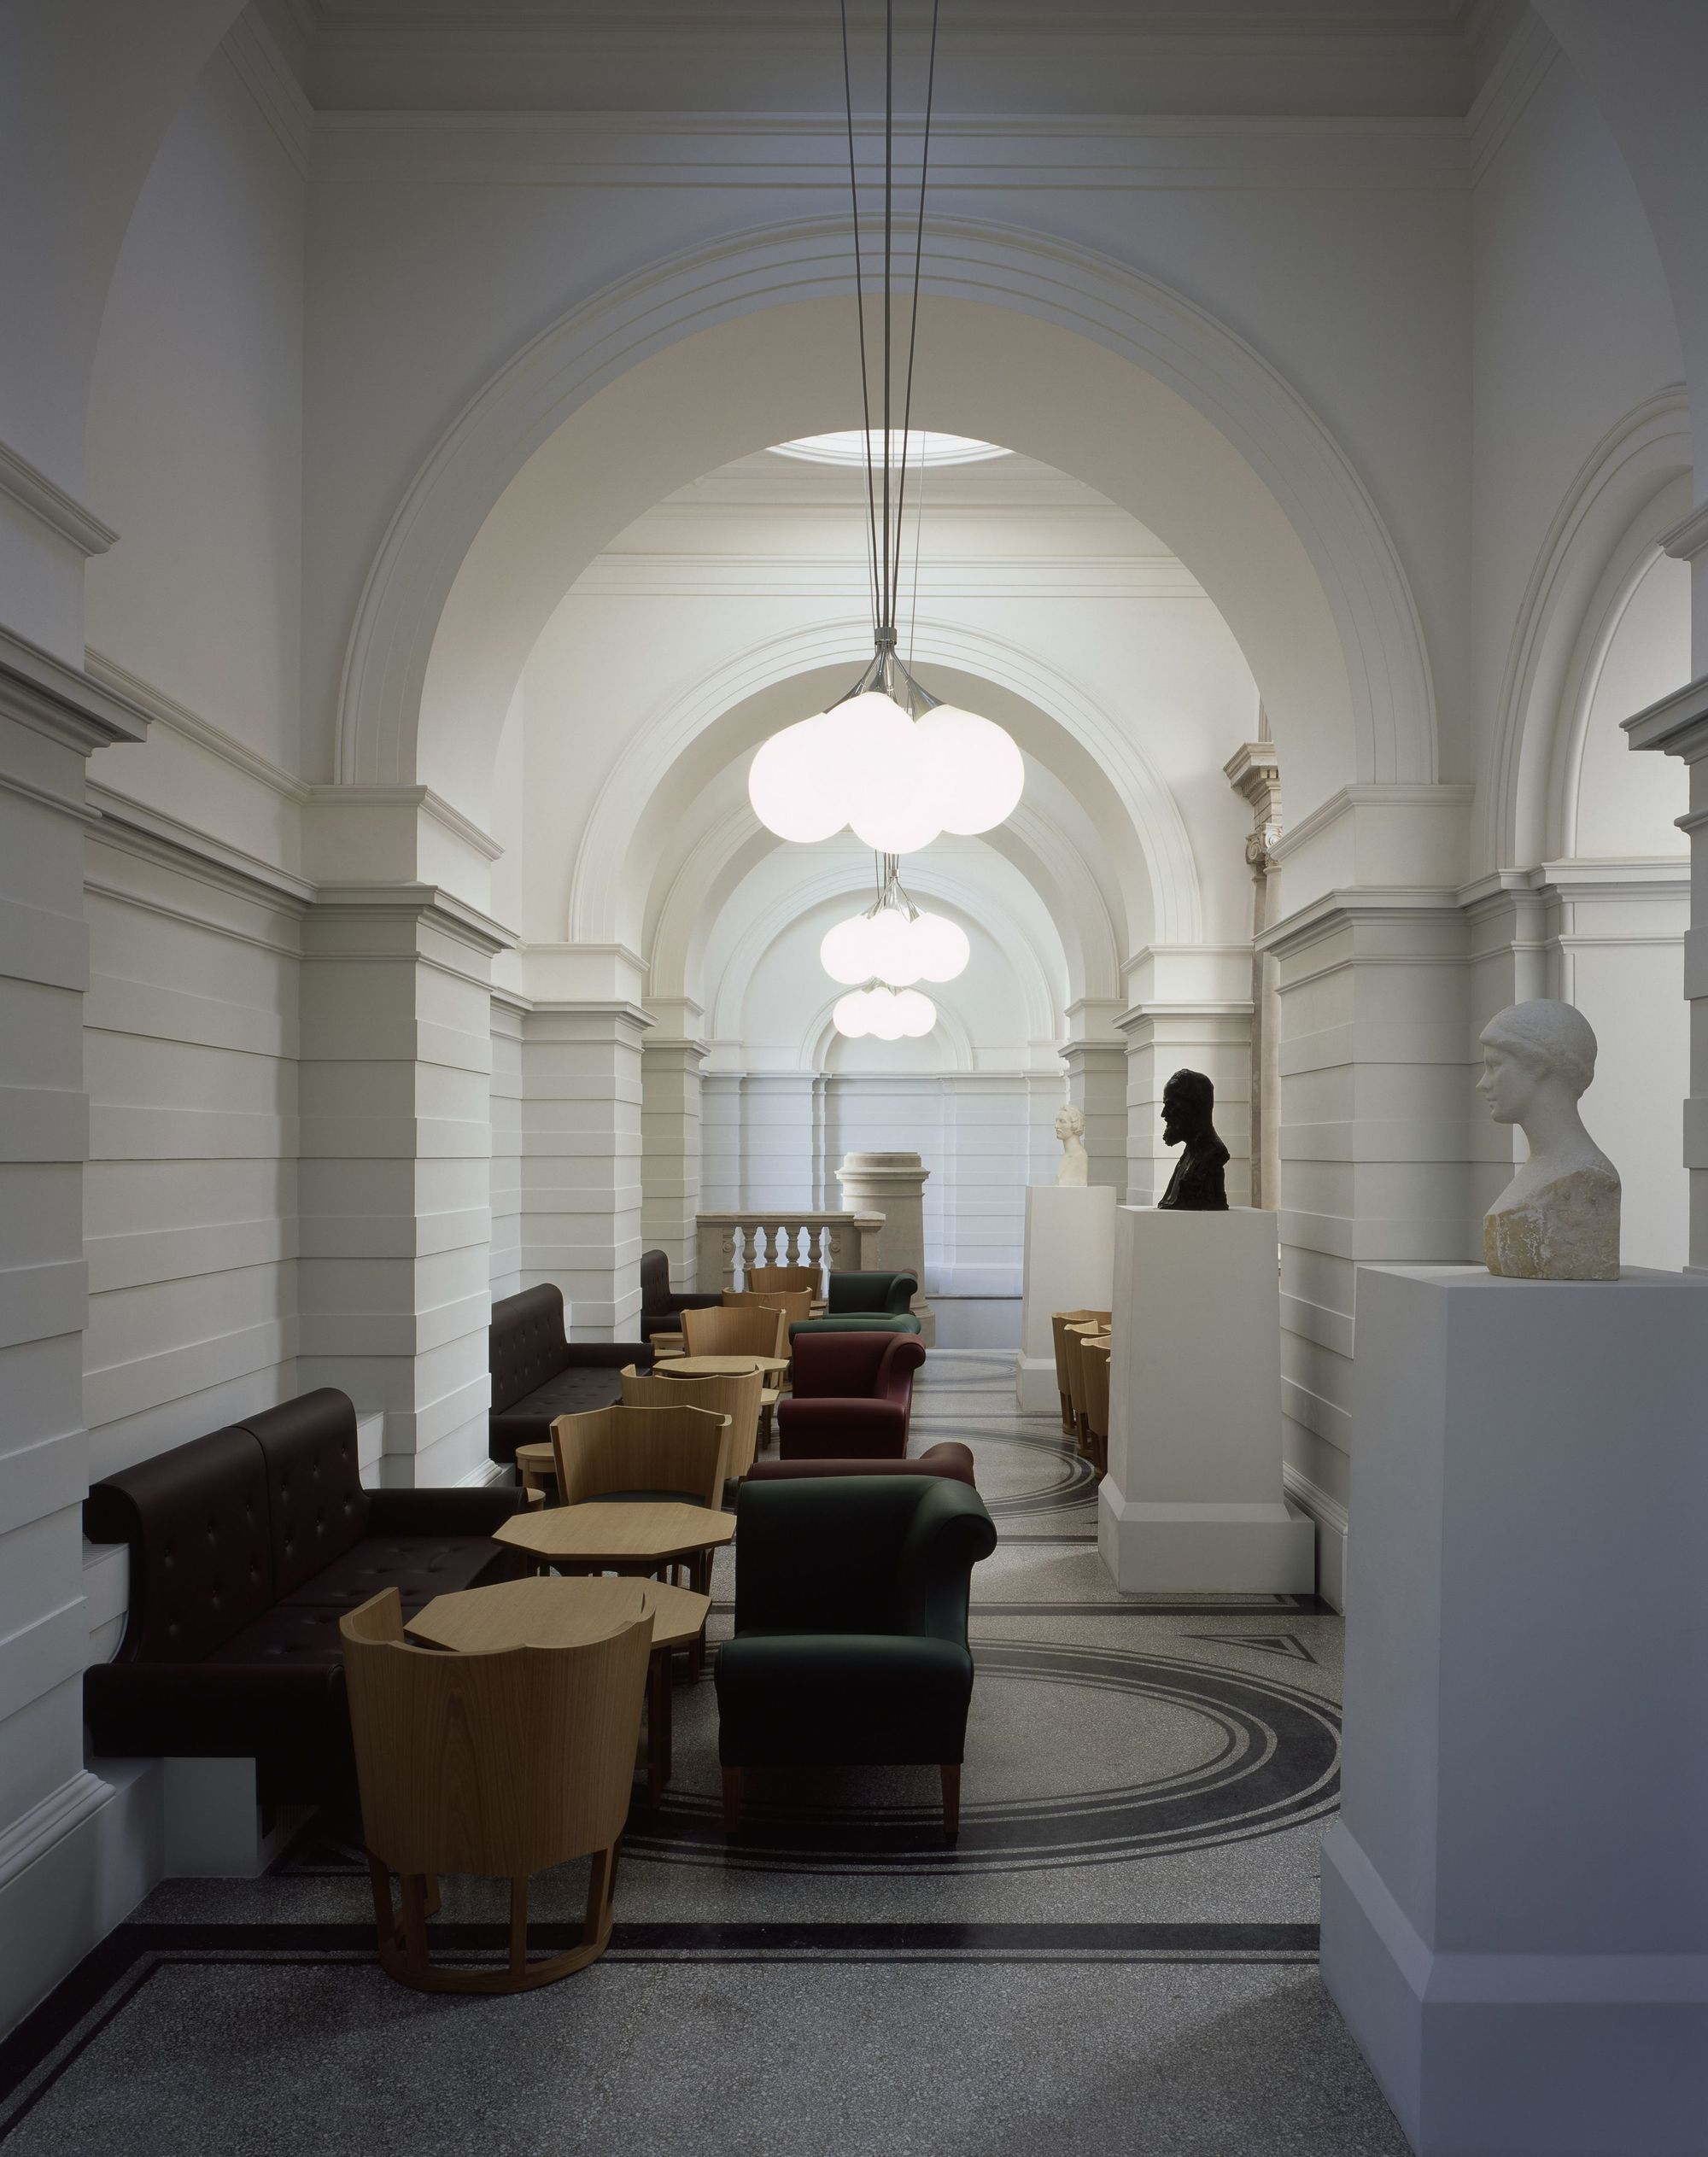 The Architects Choice_critical-round-up-tate-britain-renovation-caruso-st-john_03_members-_area_-c-_helene_binet.jpg